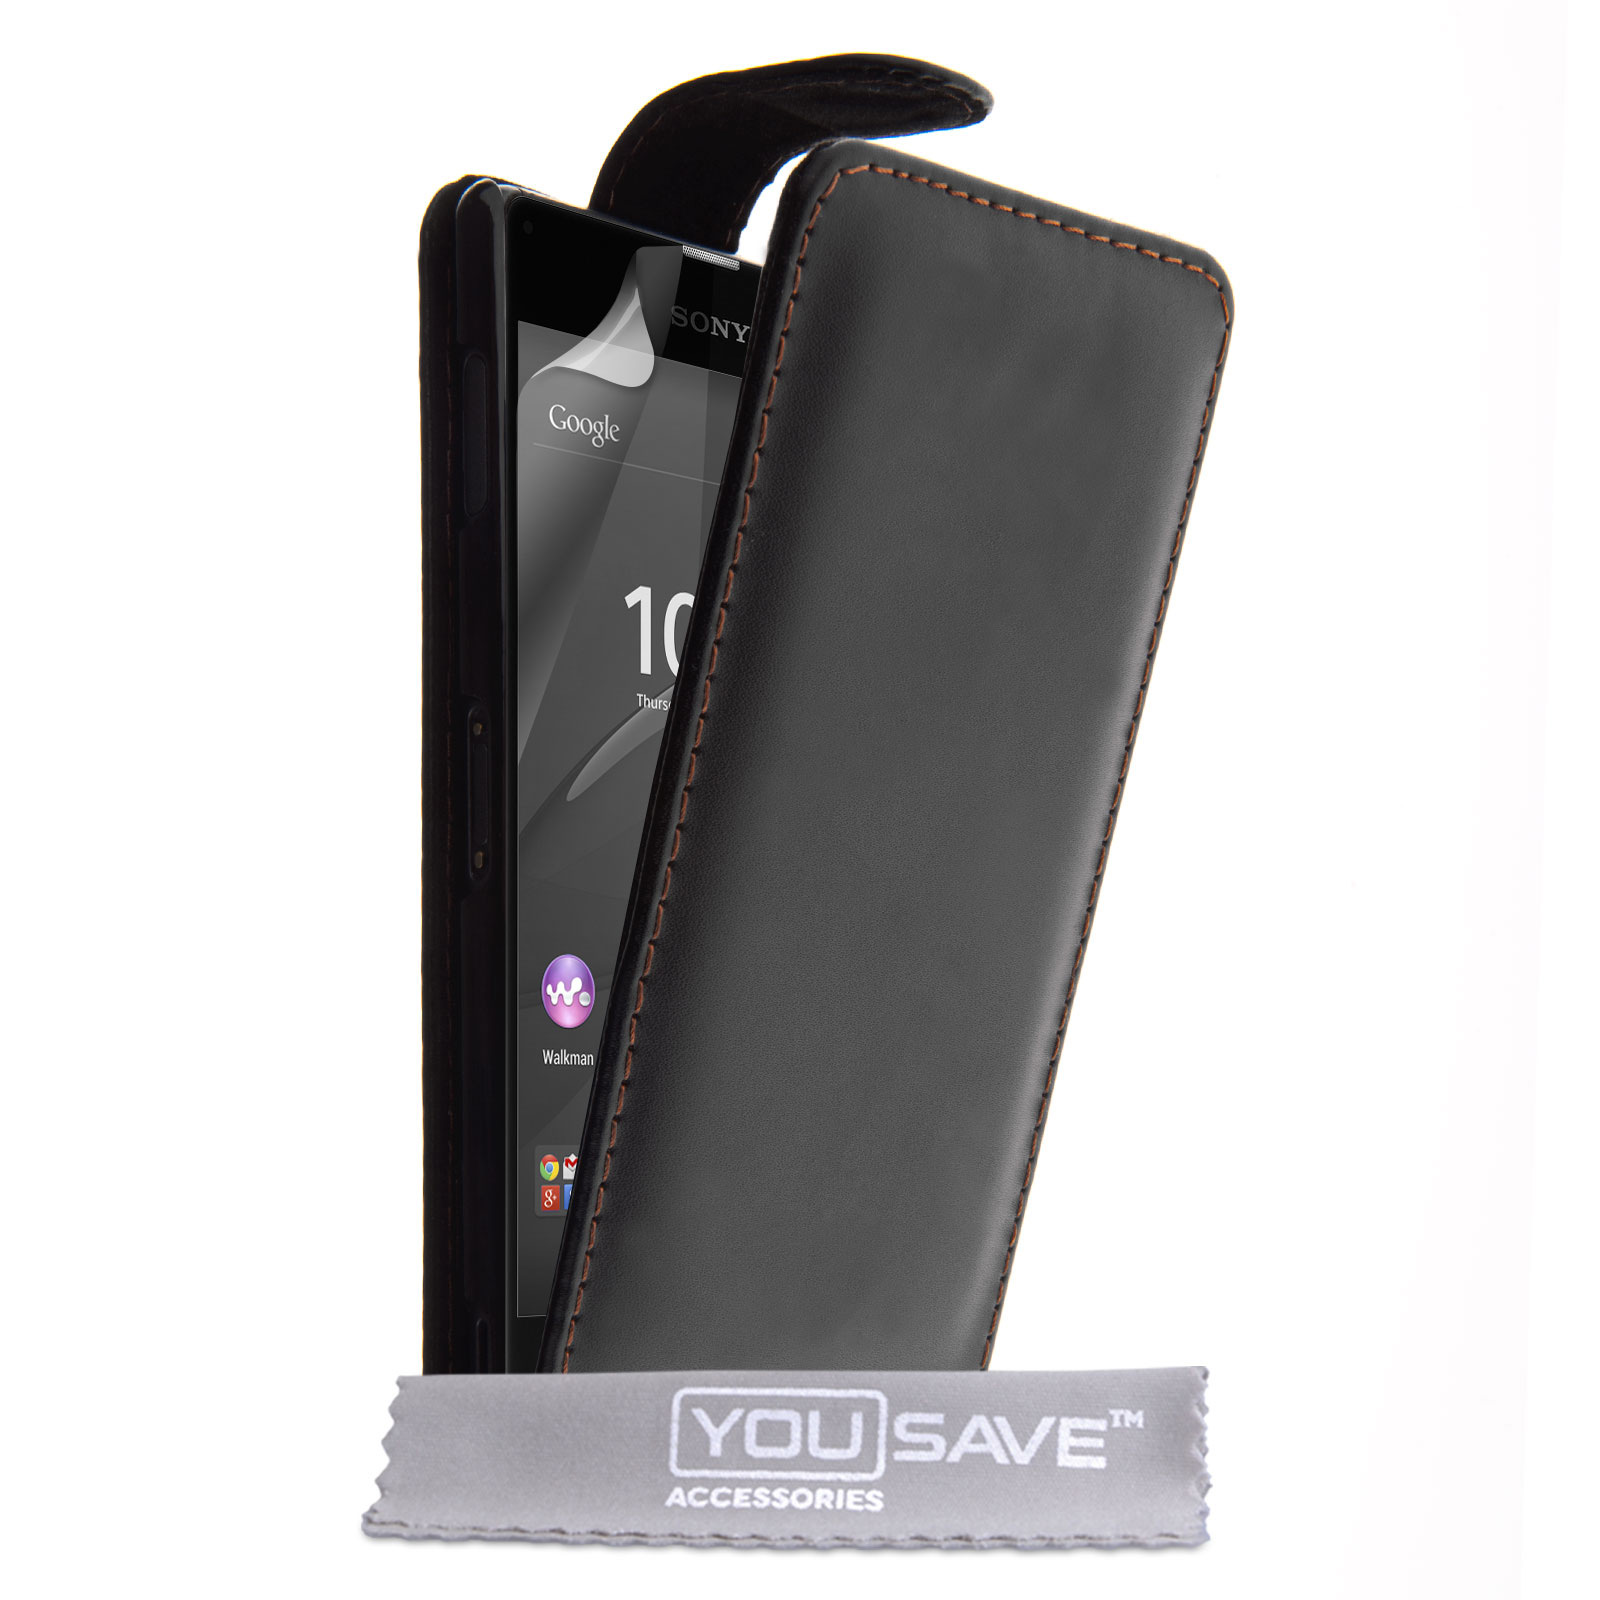 YouSave Sony Xperia Z3+ Leather-Effect Flip Case - Black